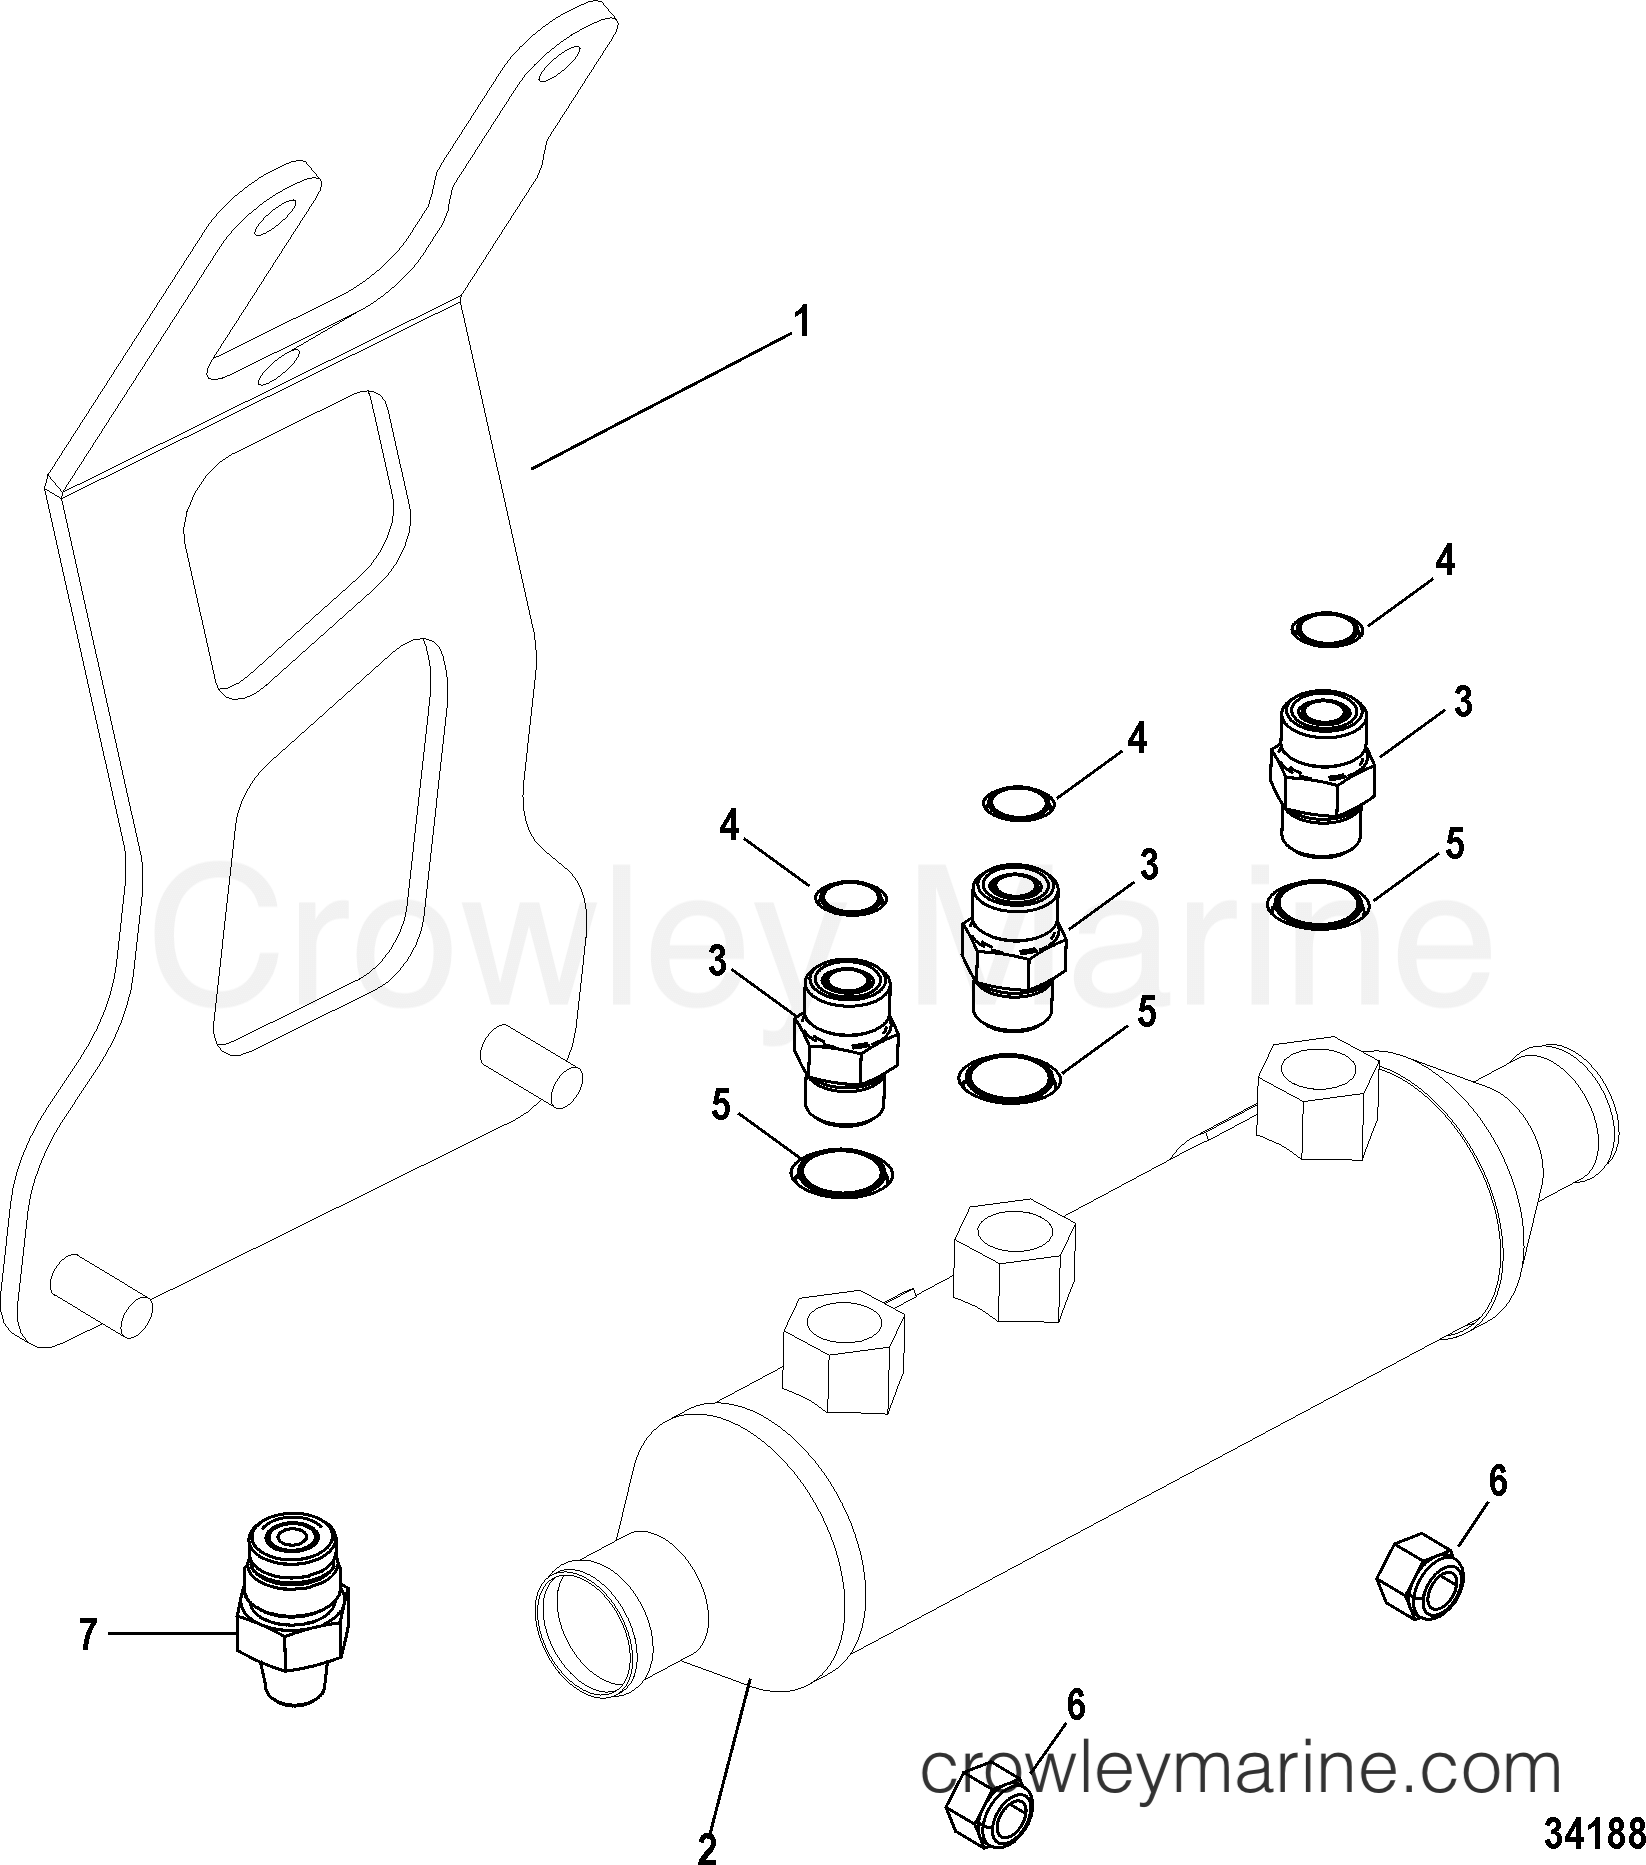 Mercruiser 350 Oil Cooler Diagram Trusted Wiring Diagrams Mag Axius Steering Components And Bracket Gen I 1998 454 Transmission